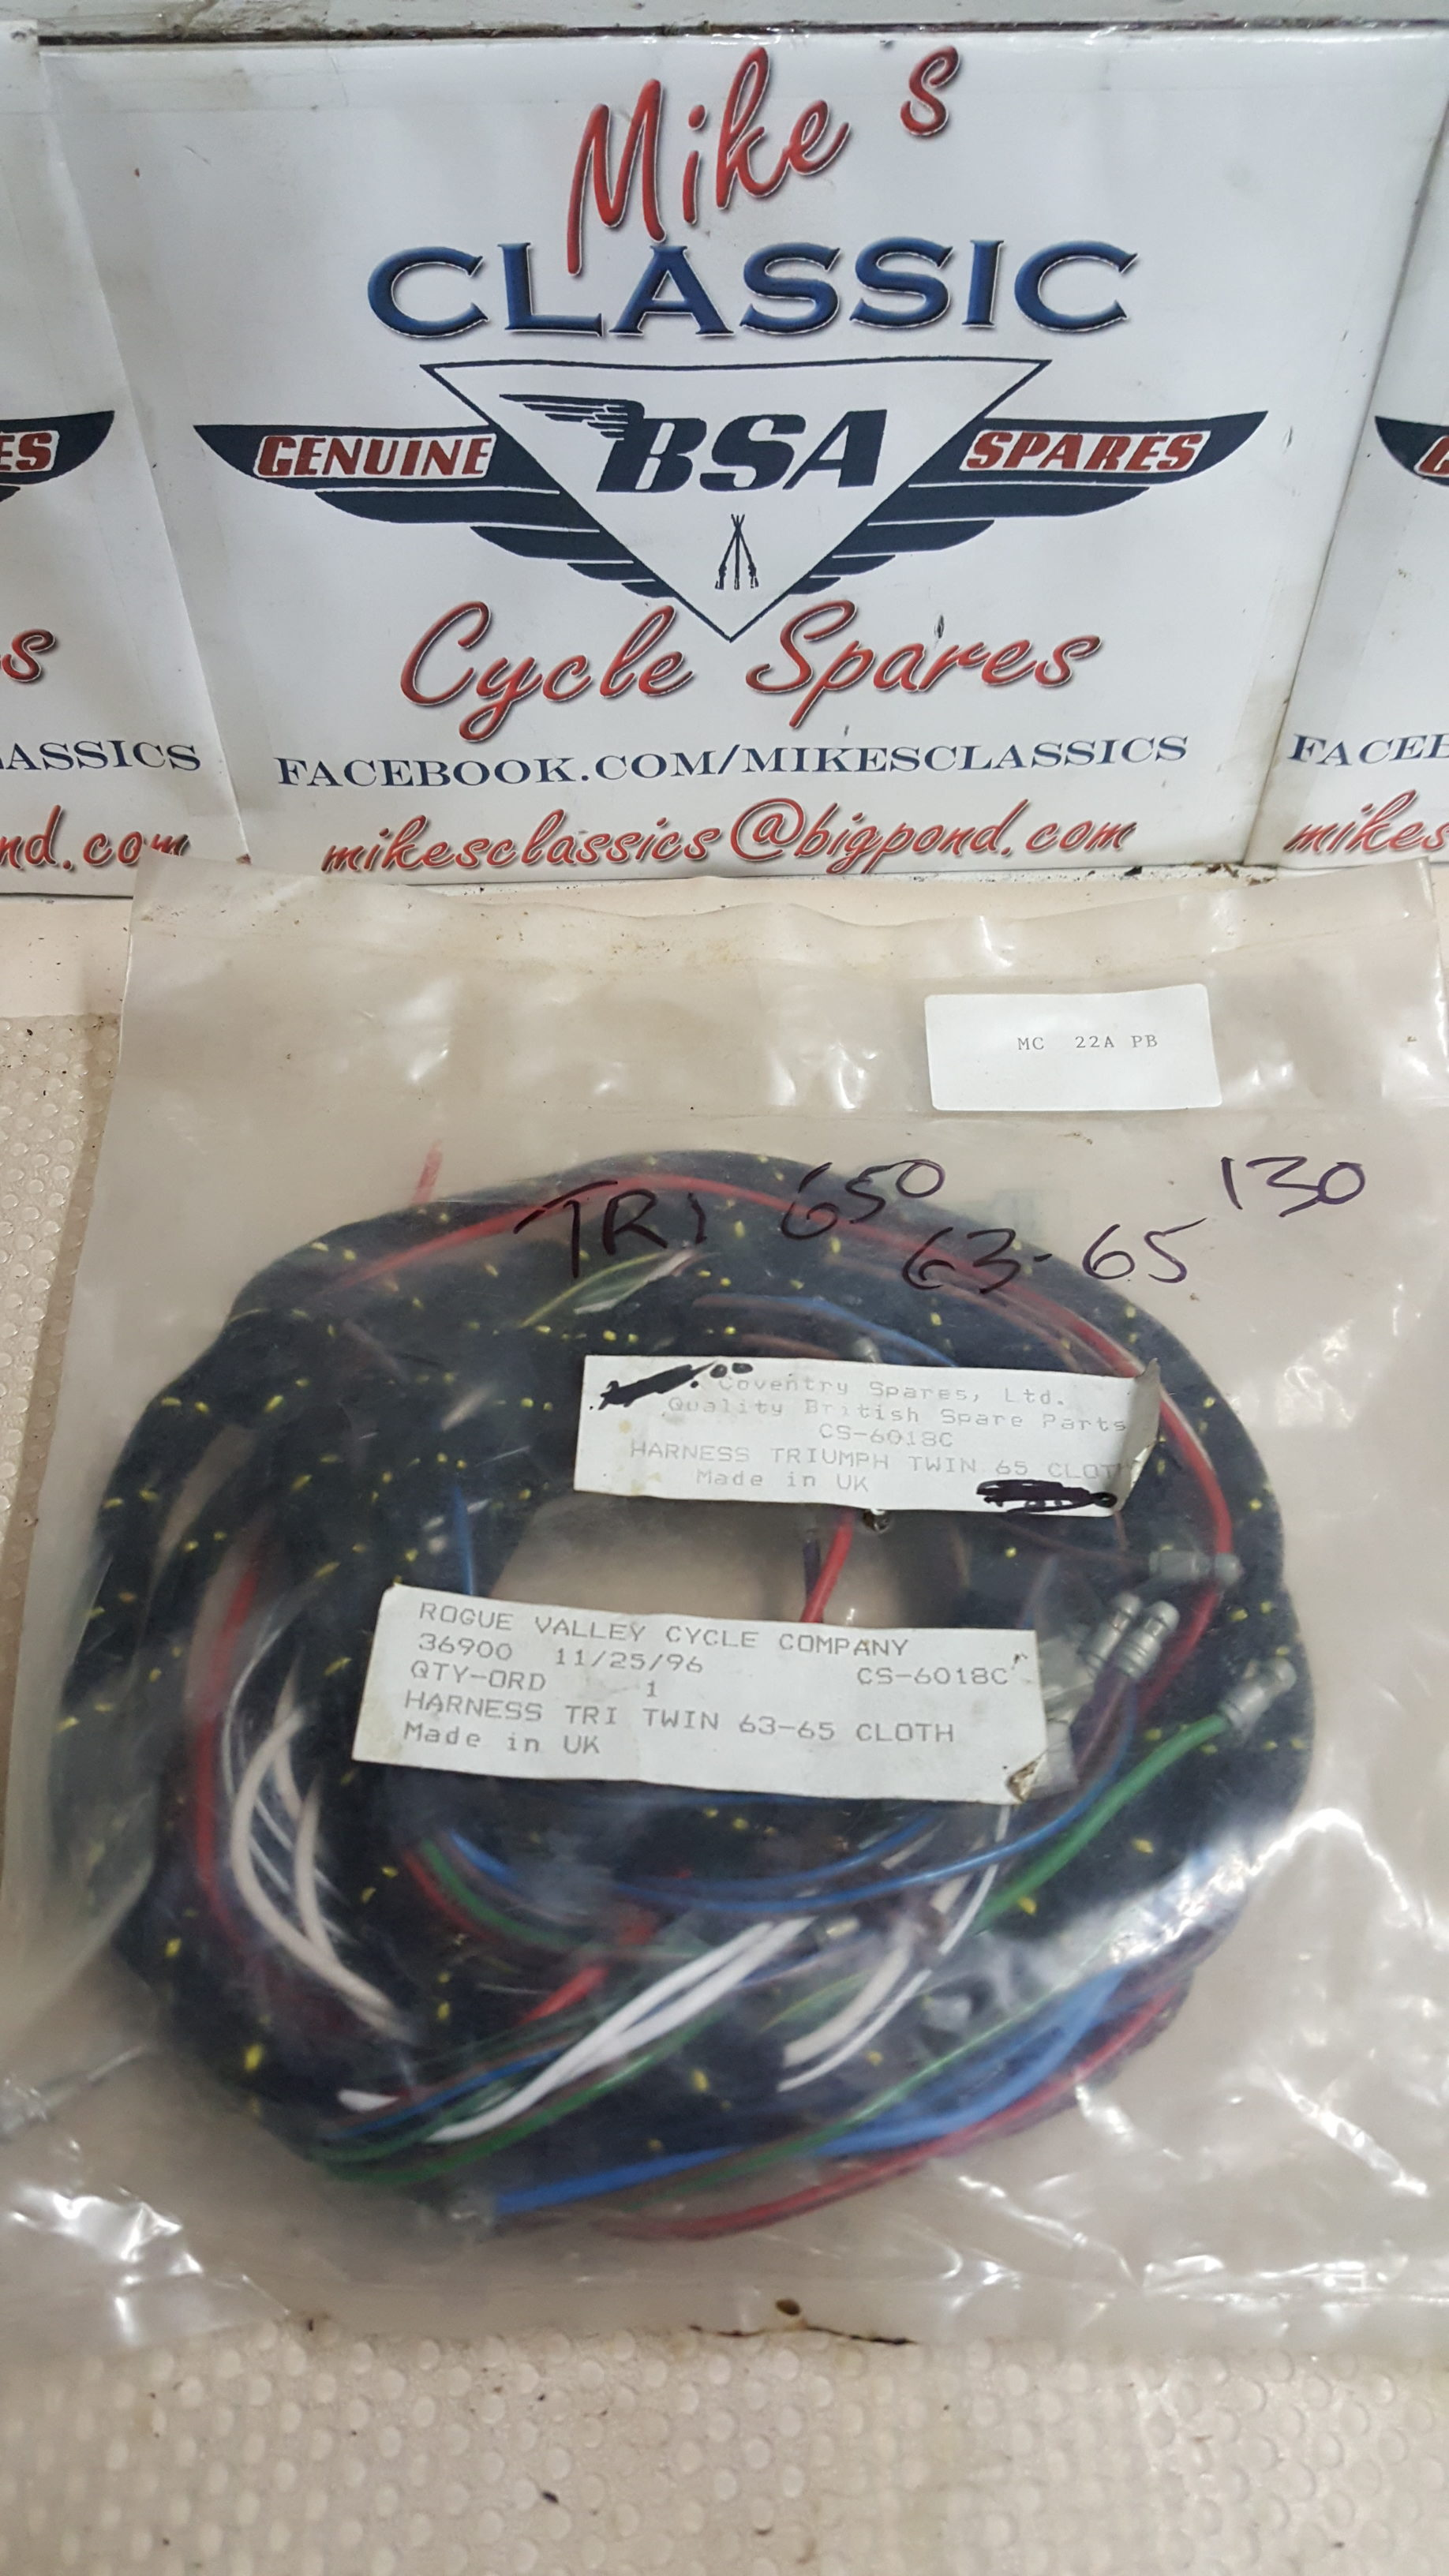 20170731_100229 e1501462859455?fit=1836%2C3264&ssl=1 new 1963 1965 triumph 650 cloth wiring harness cs 6018c mikes cloth wiring harness at gsmx.co